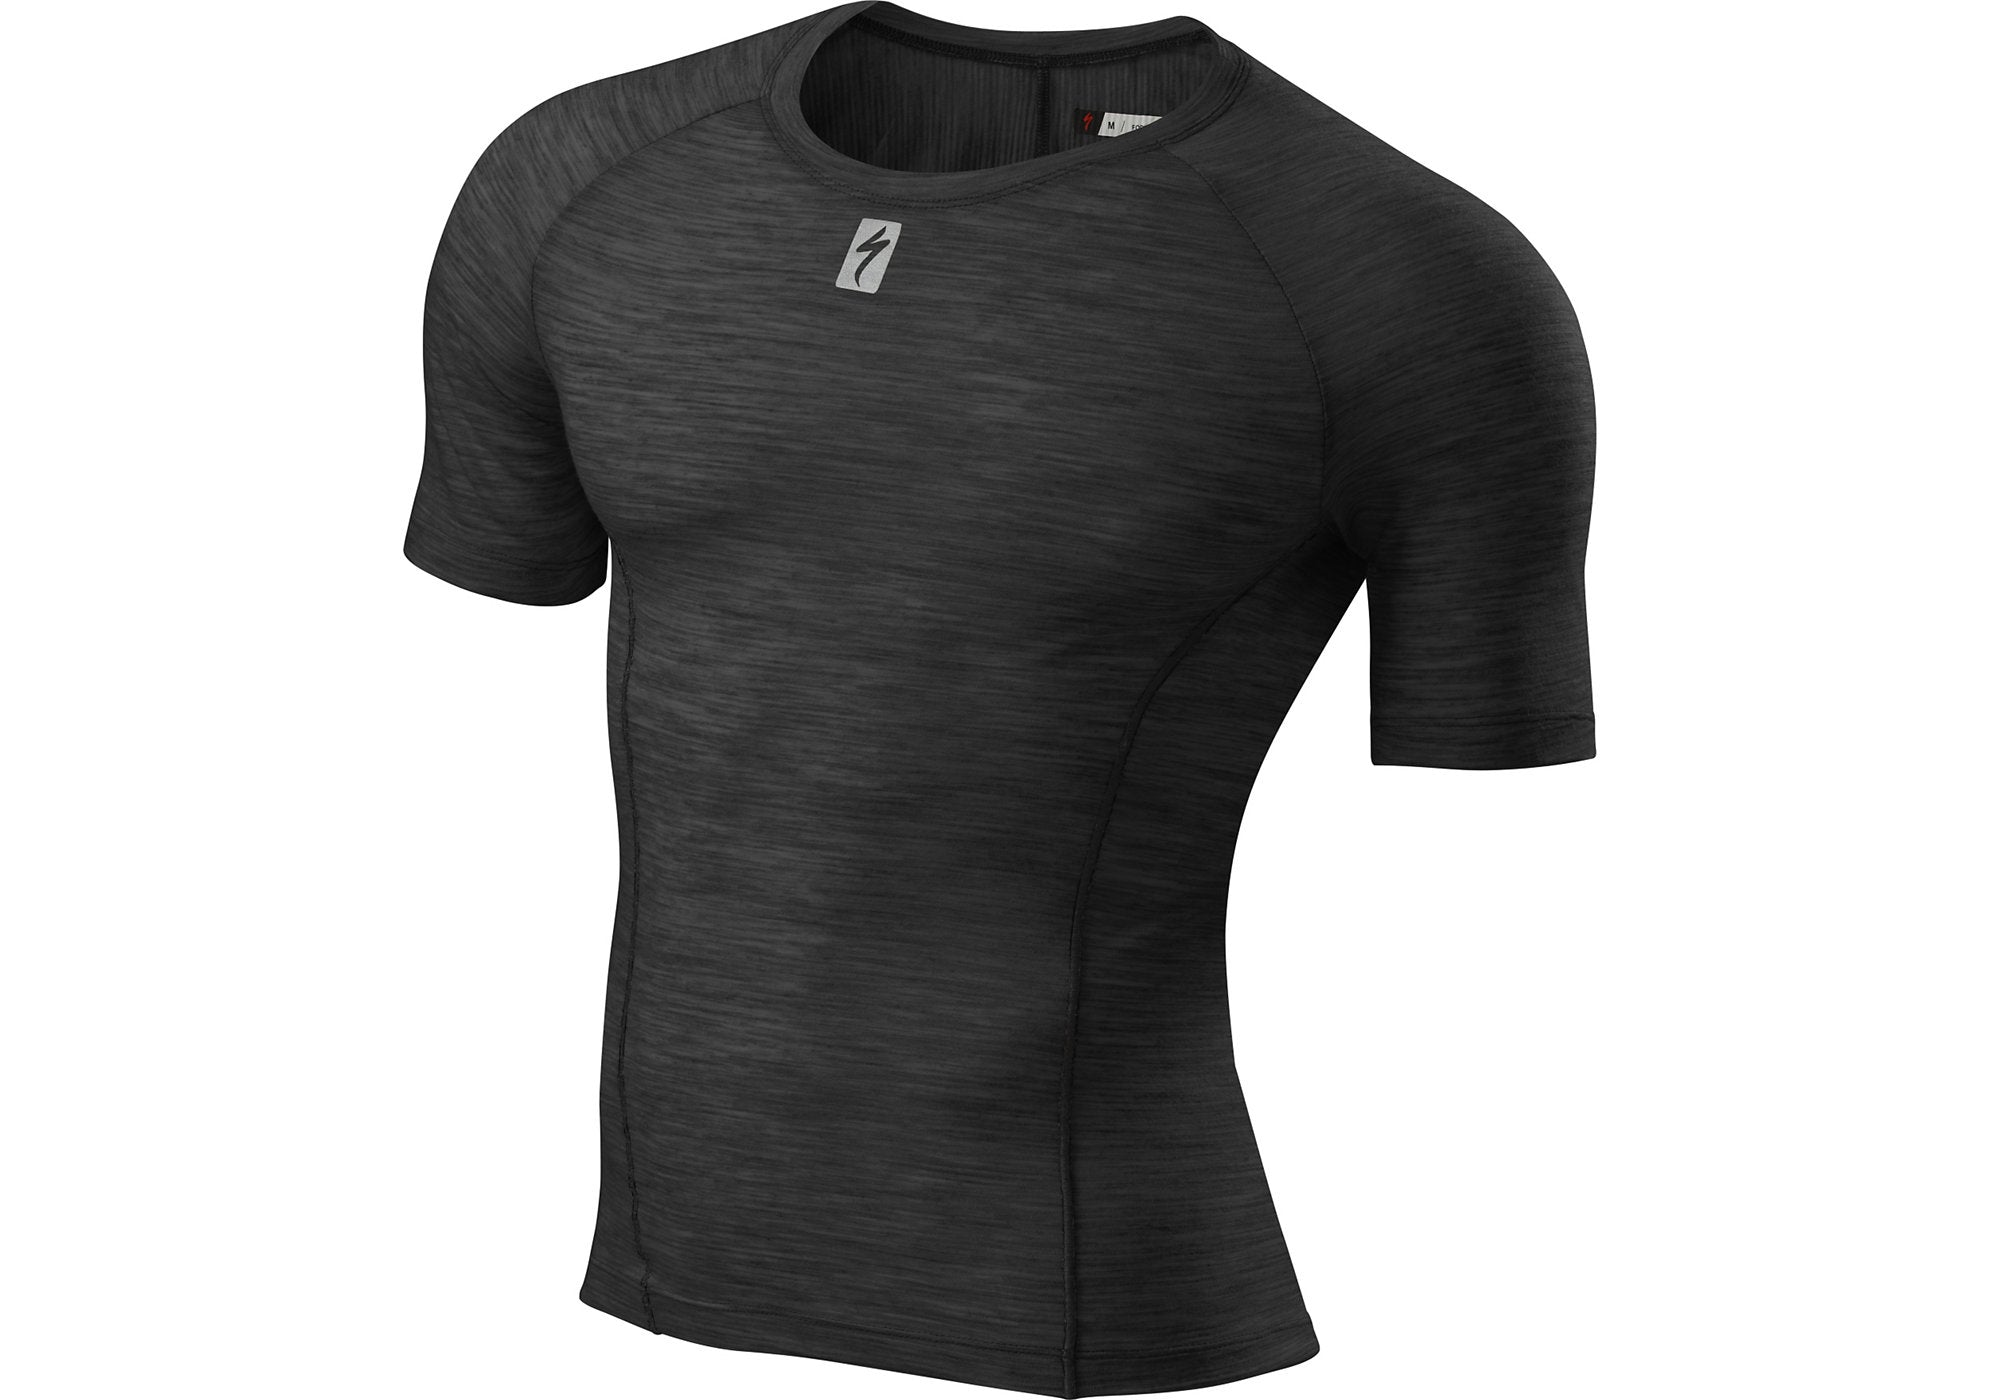 Specialized Mens Merino Layer Short Sleeve, Black